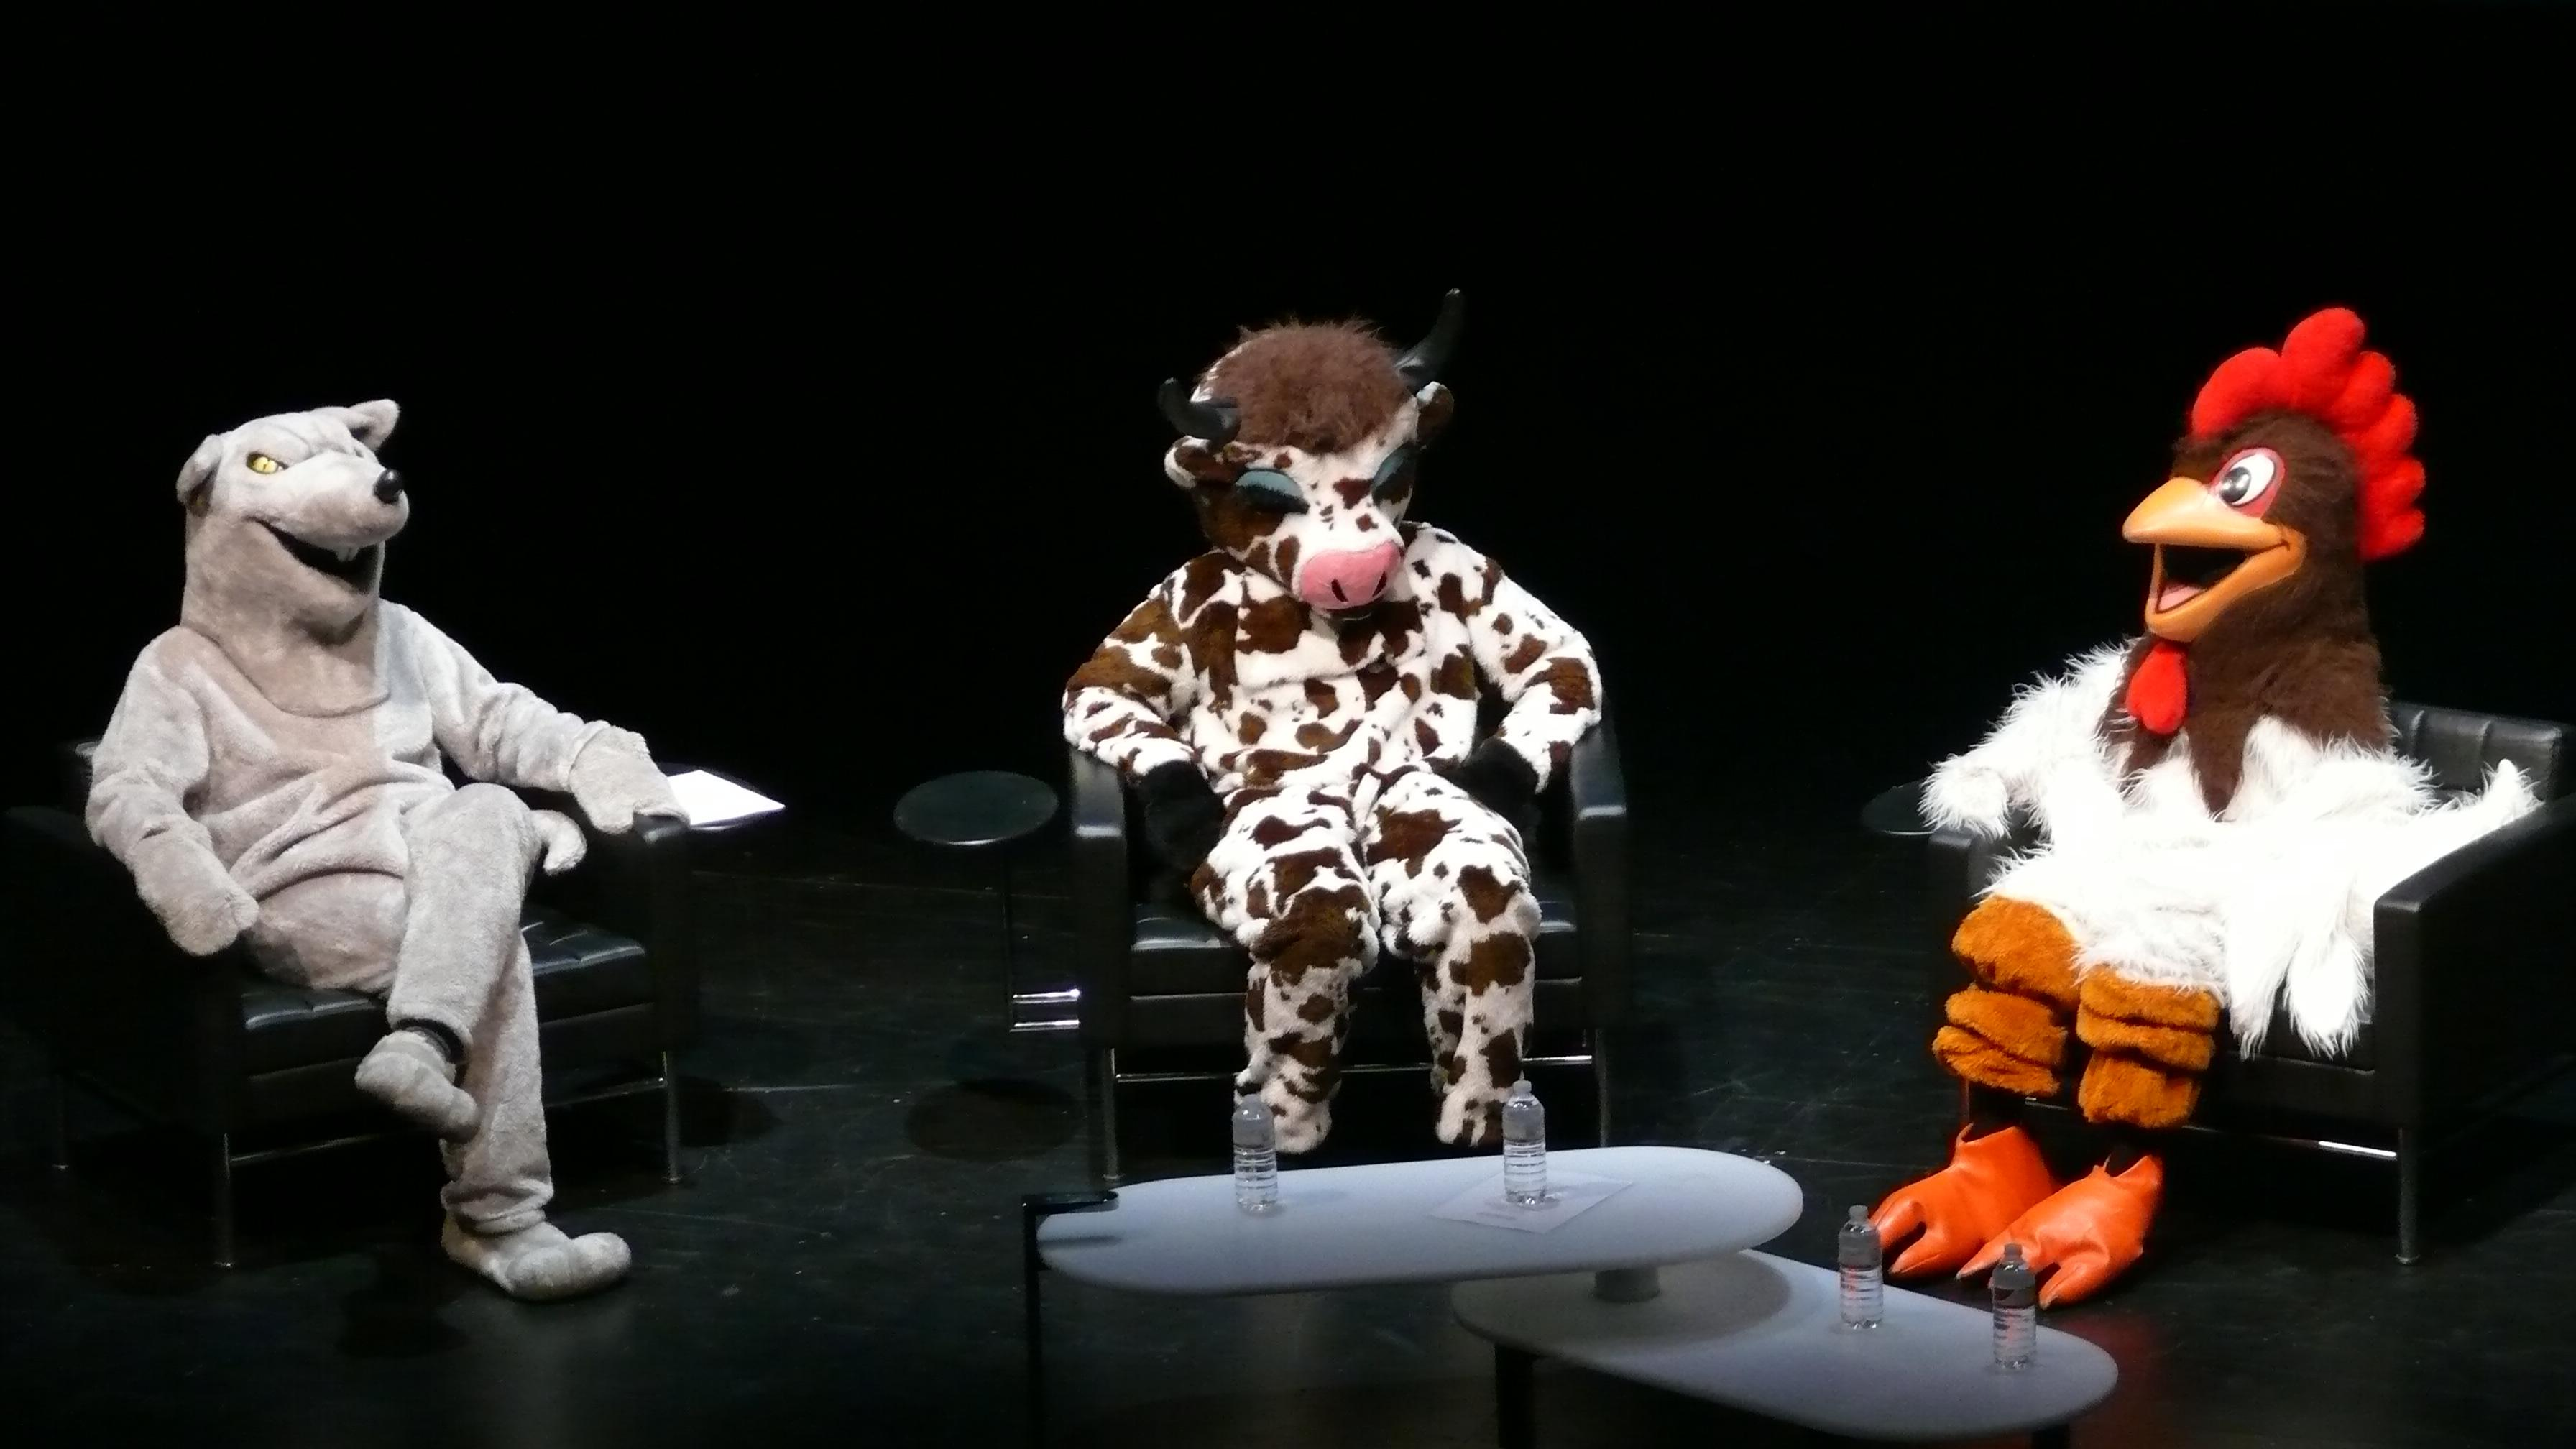 Three people dressed in animal costumes—a rat, a cow, and a chicken—sit on a stage.